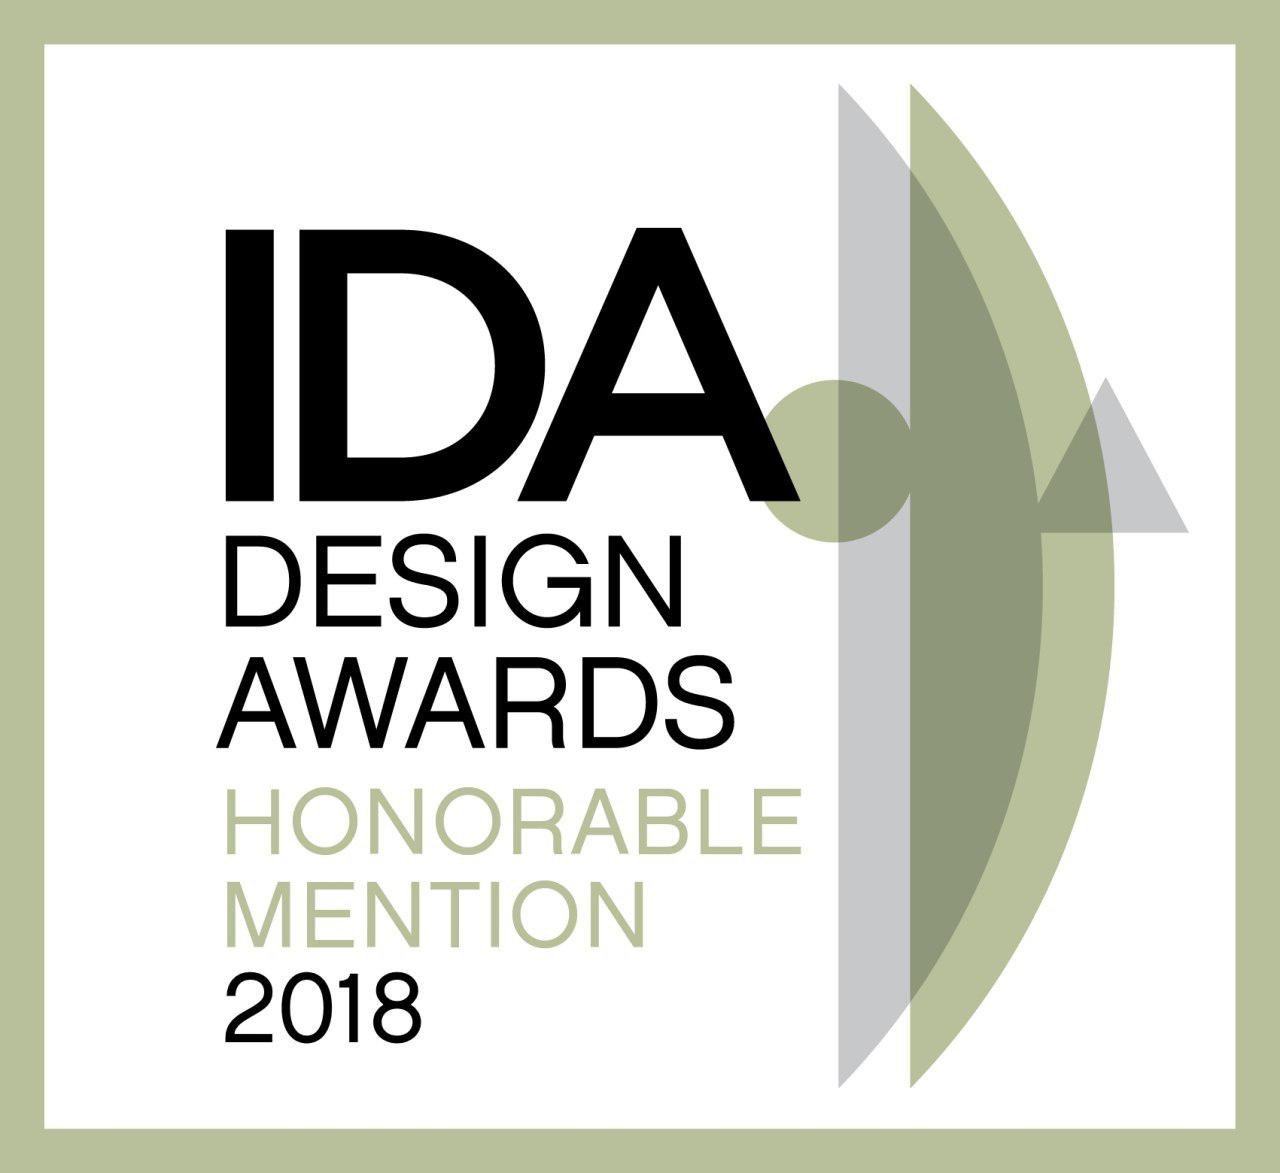 IDA Design Awards 2018 | USA